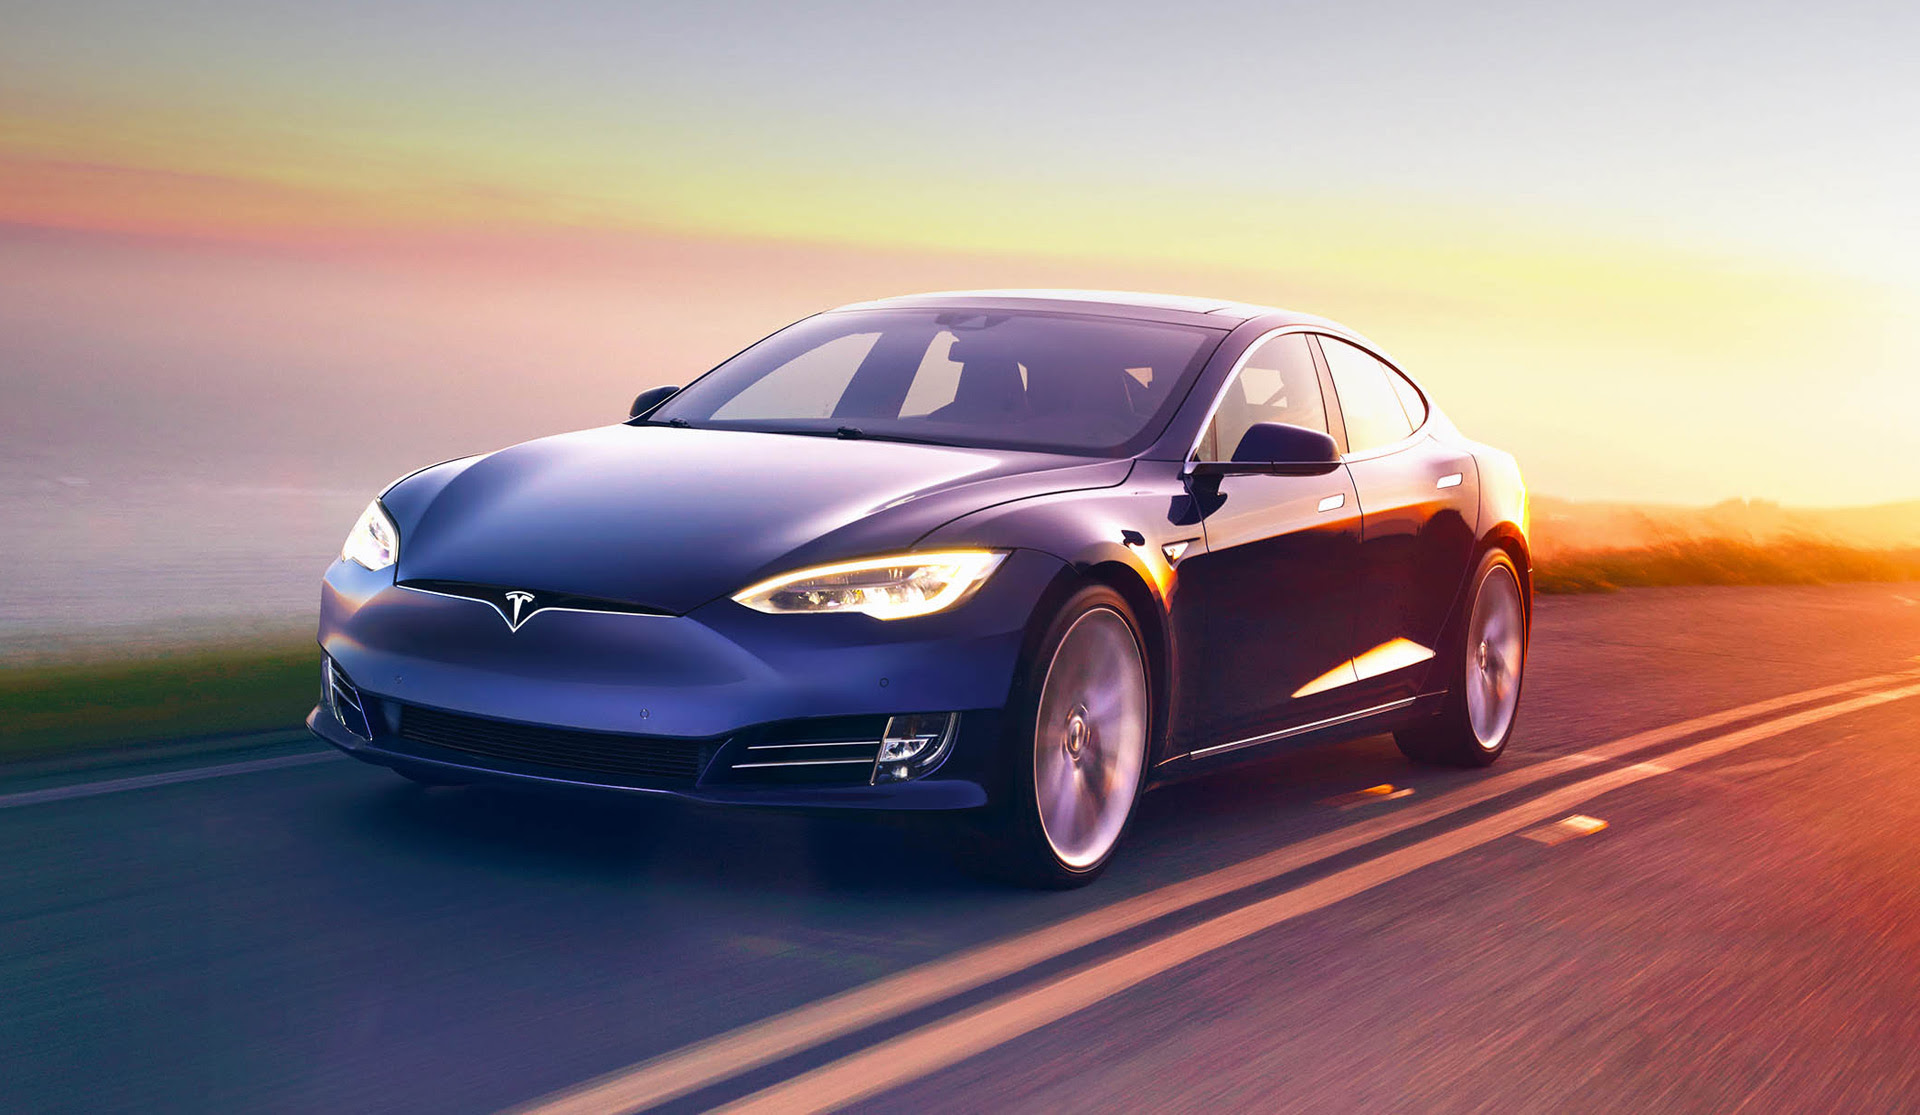 Tesla Model S price dropped to $67,200 for new 60-kwh option